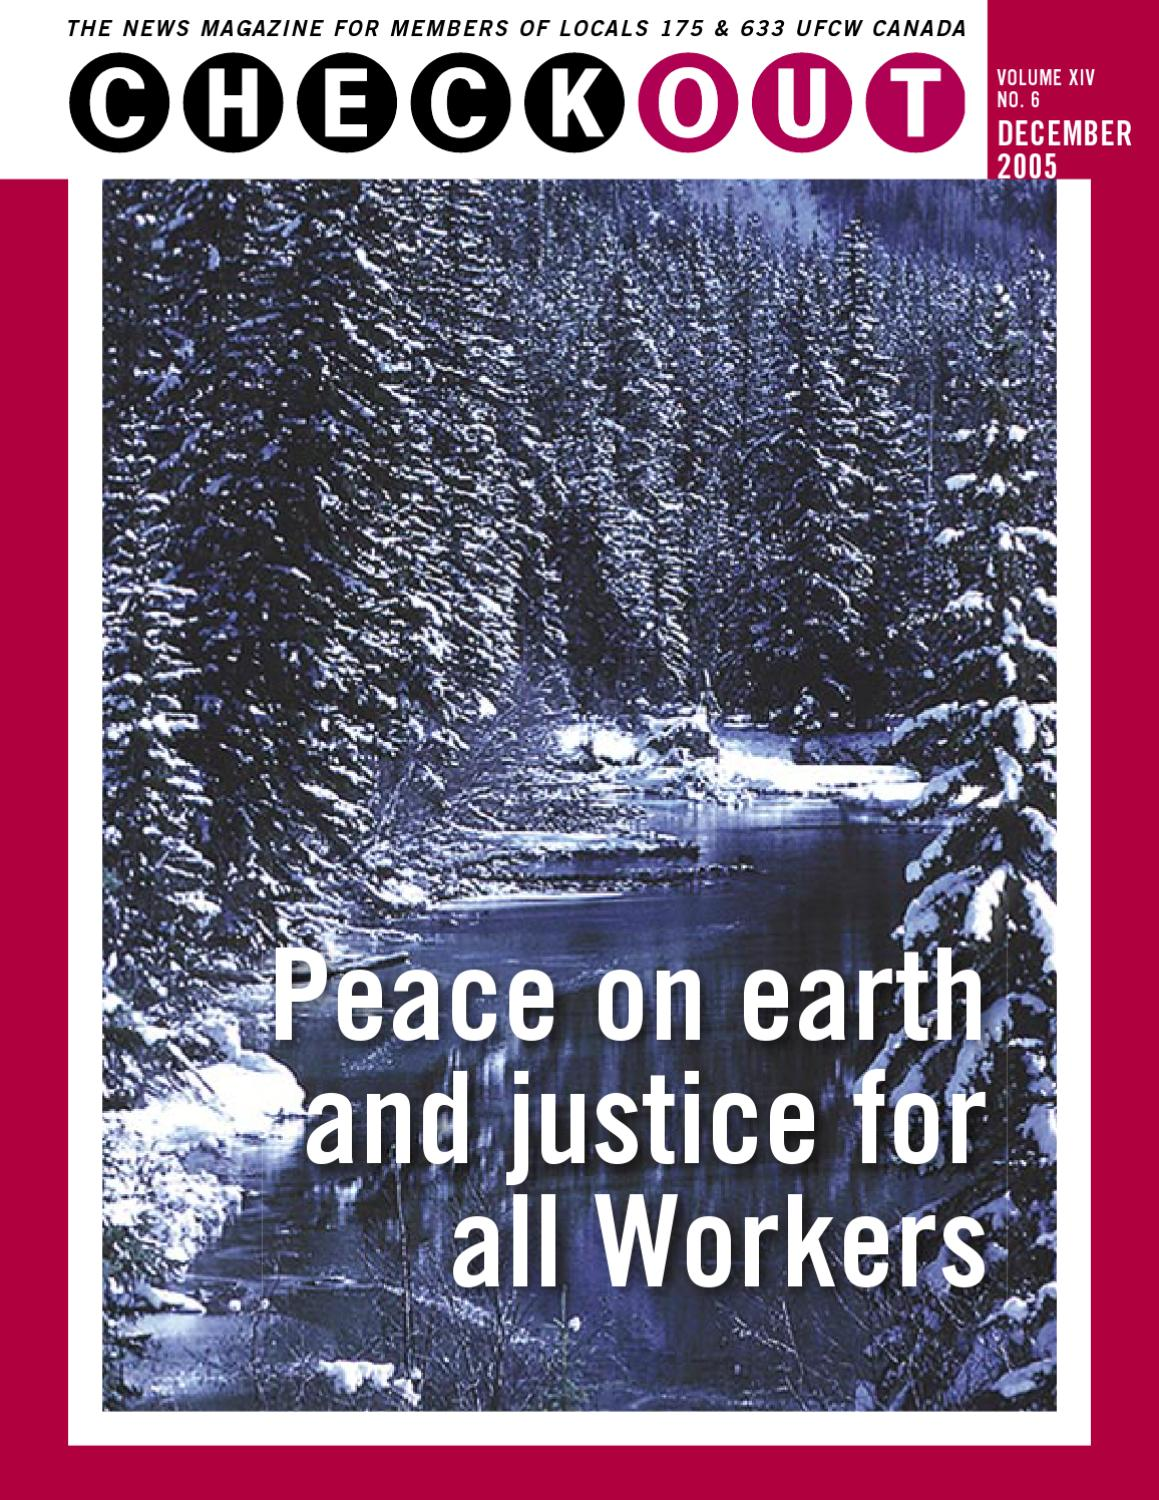 Checkout December 2005 By Ufcw Locals 175 633 Issuu